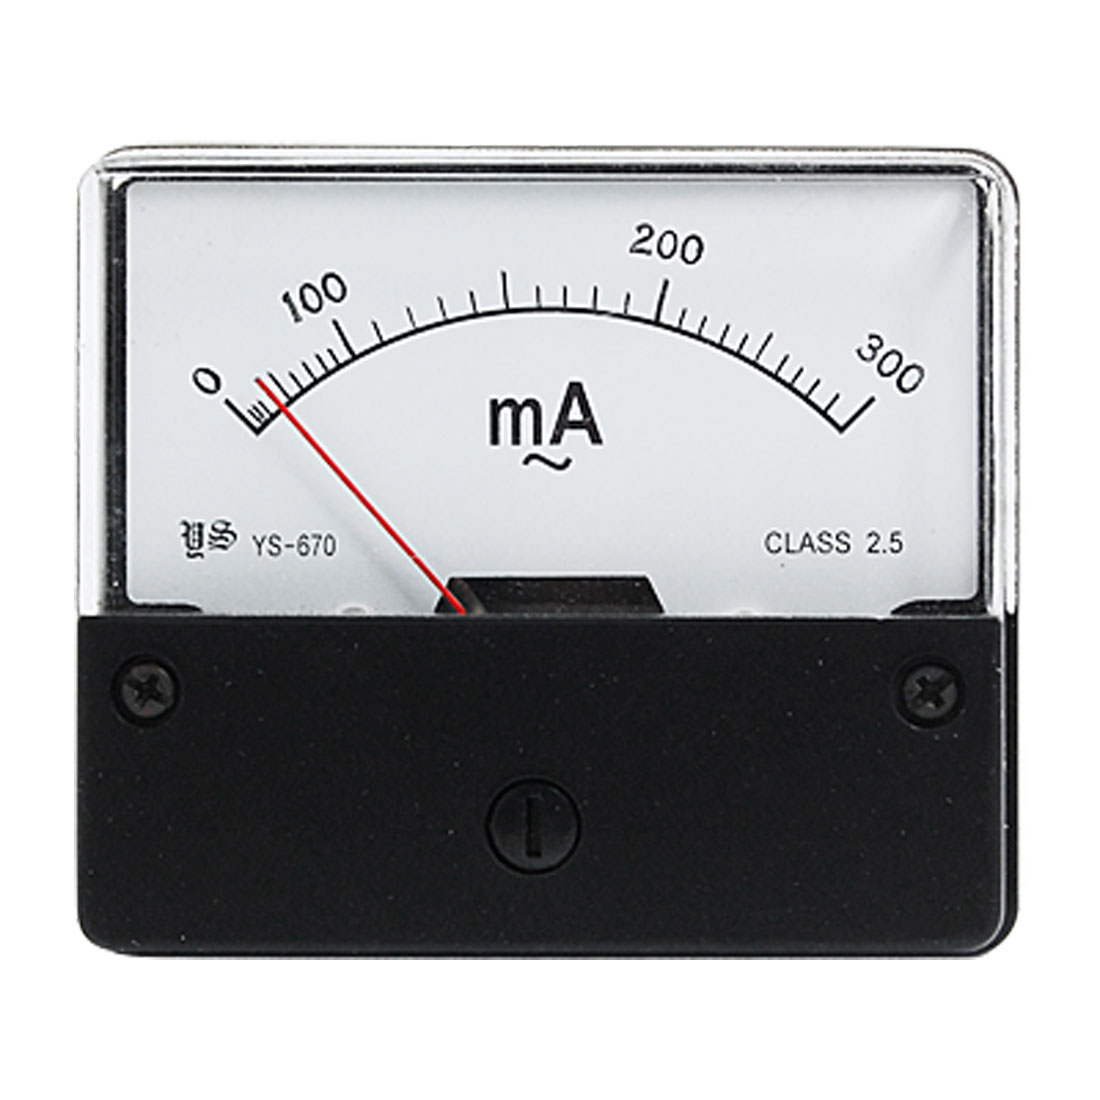 Panel Mount AC 300mA Current Amperemeter Measuring Tool